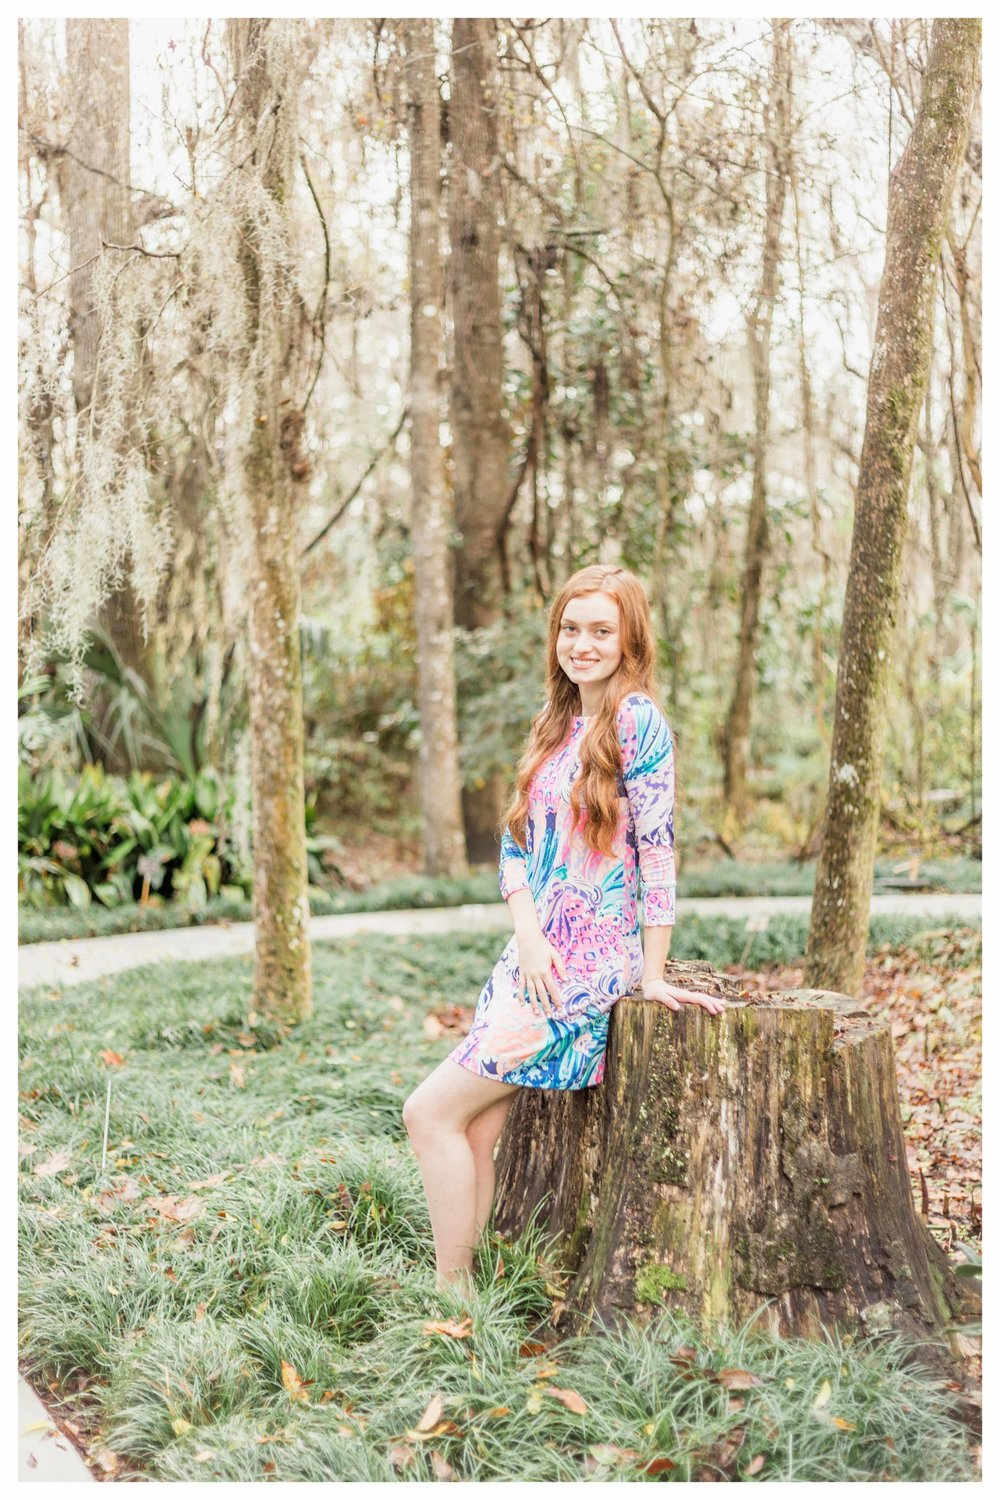 lillie_senior_2018_blog-18.jpg